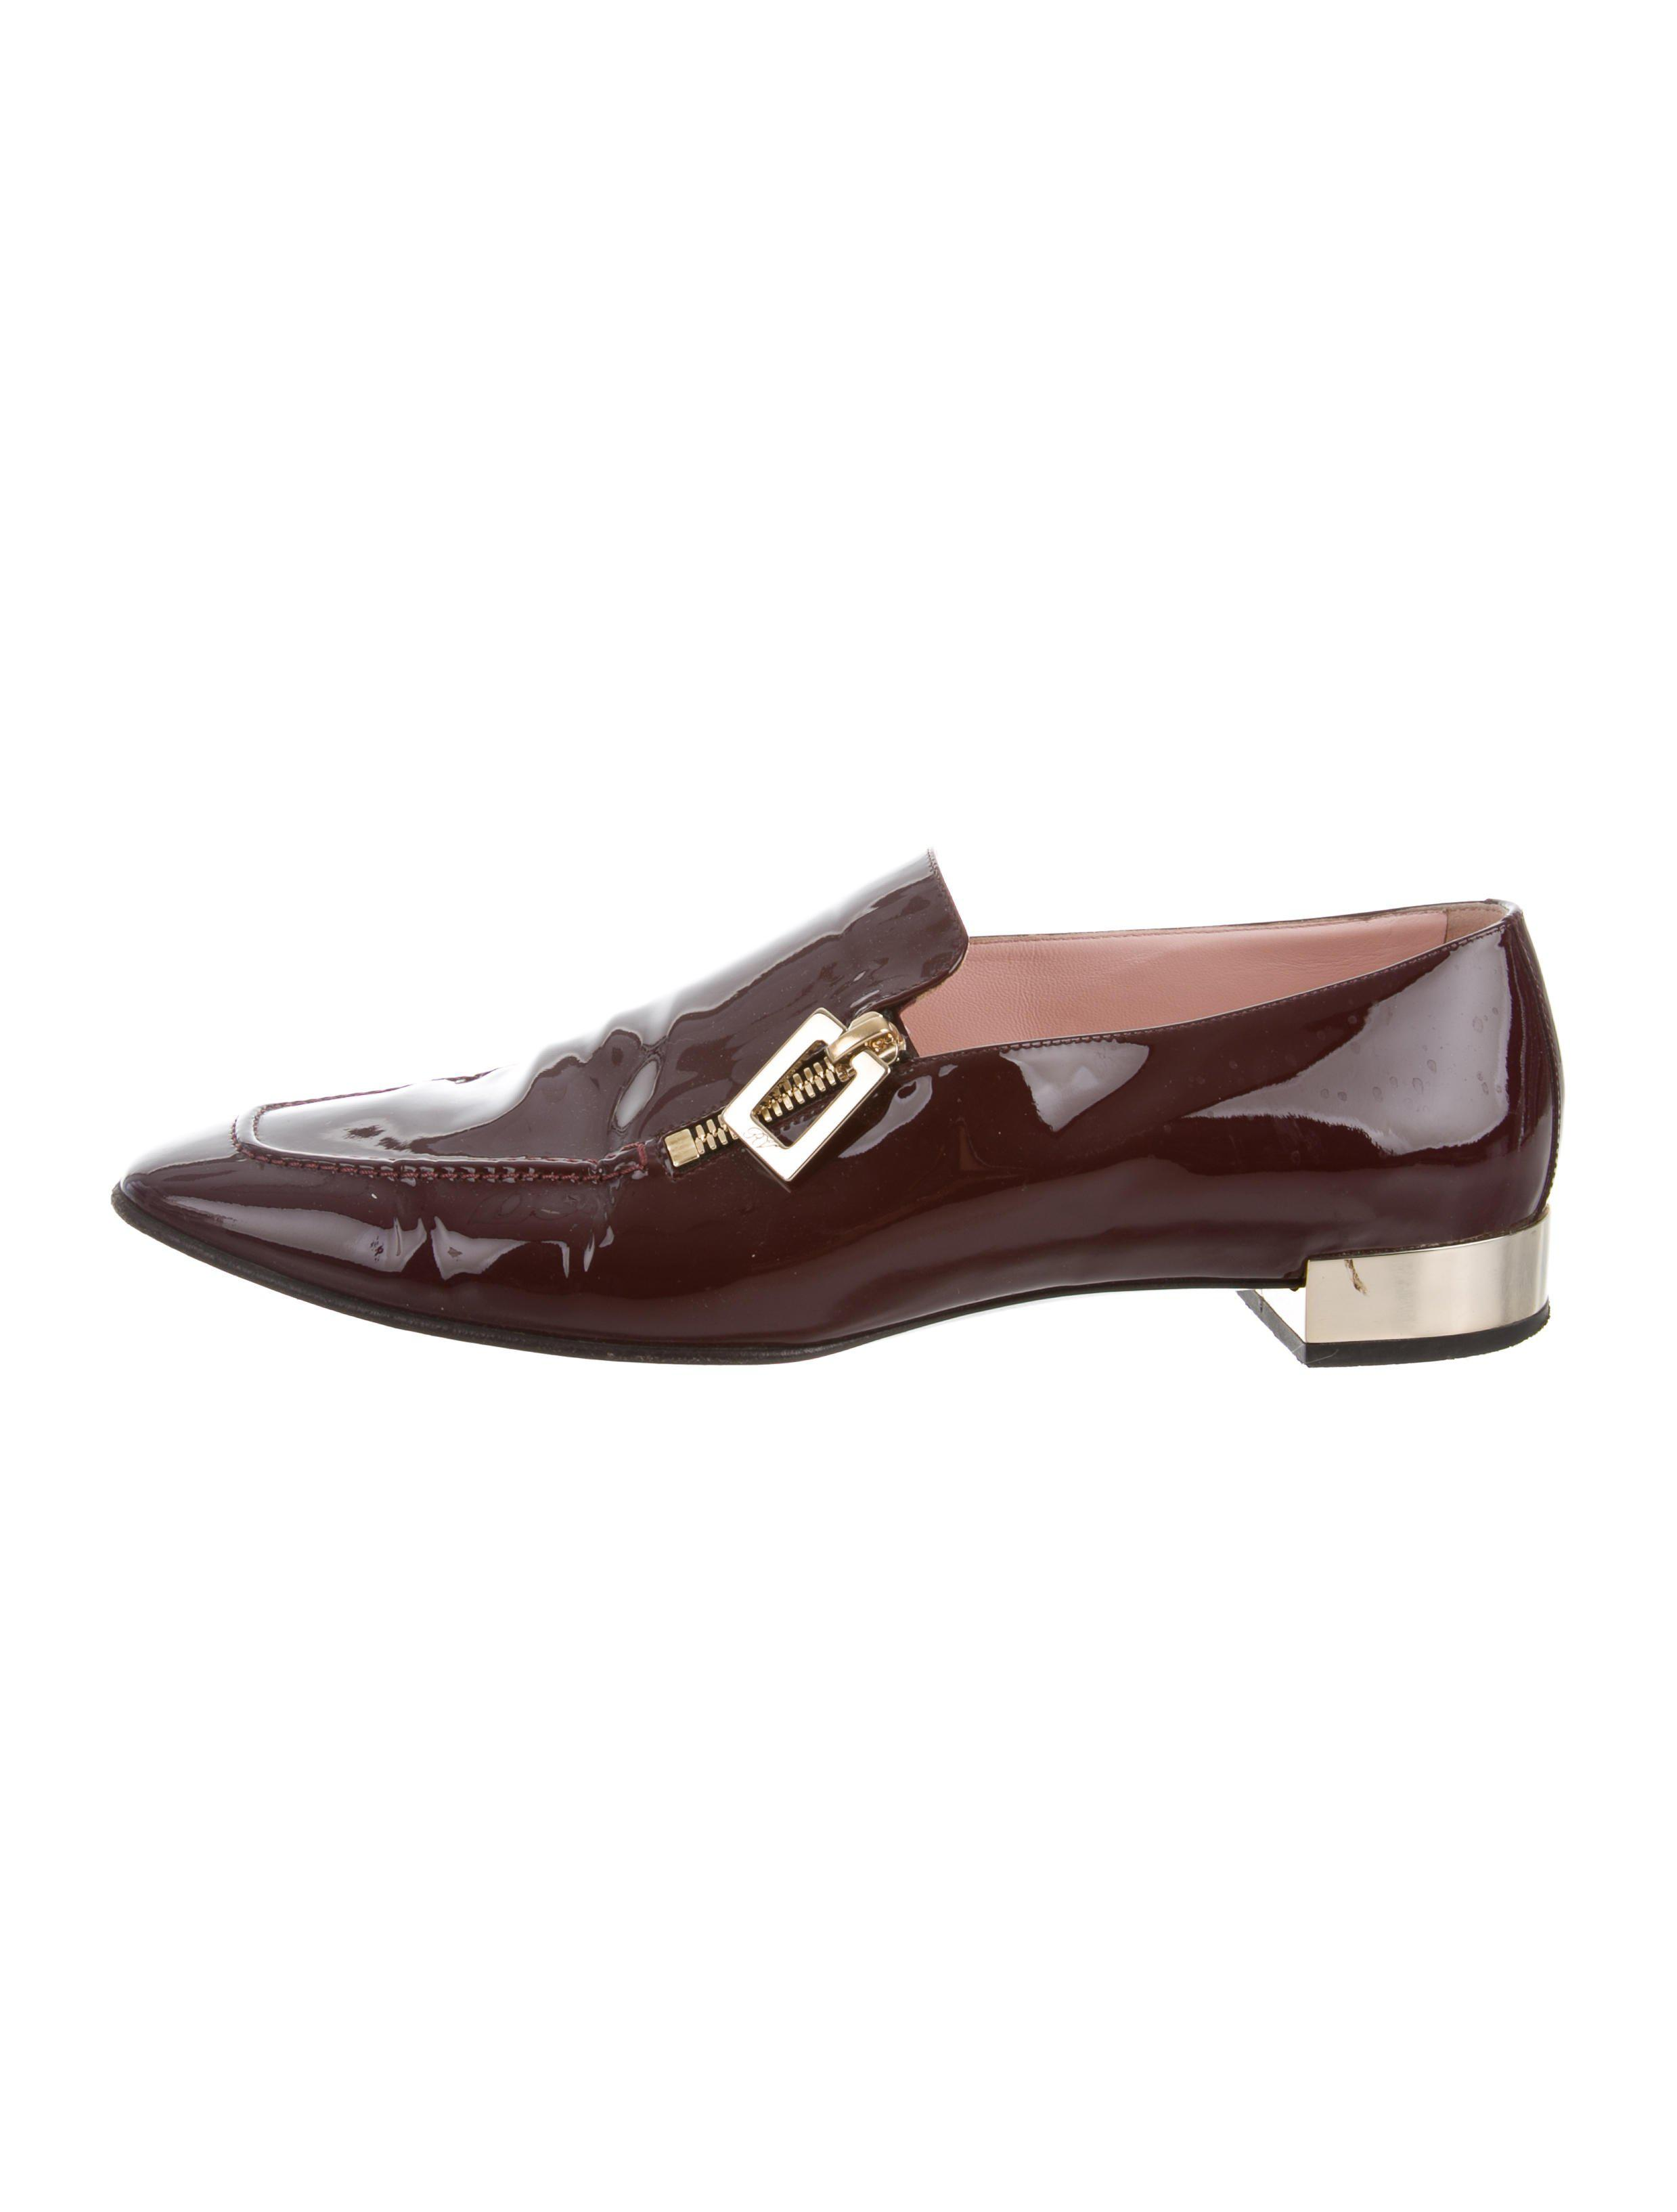 4ecd3902185 Lyst - Roger Vivier Patent Leather Round-toe Loafers Gold in Metallic